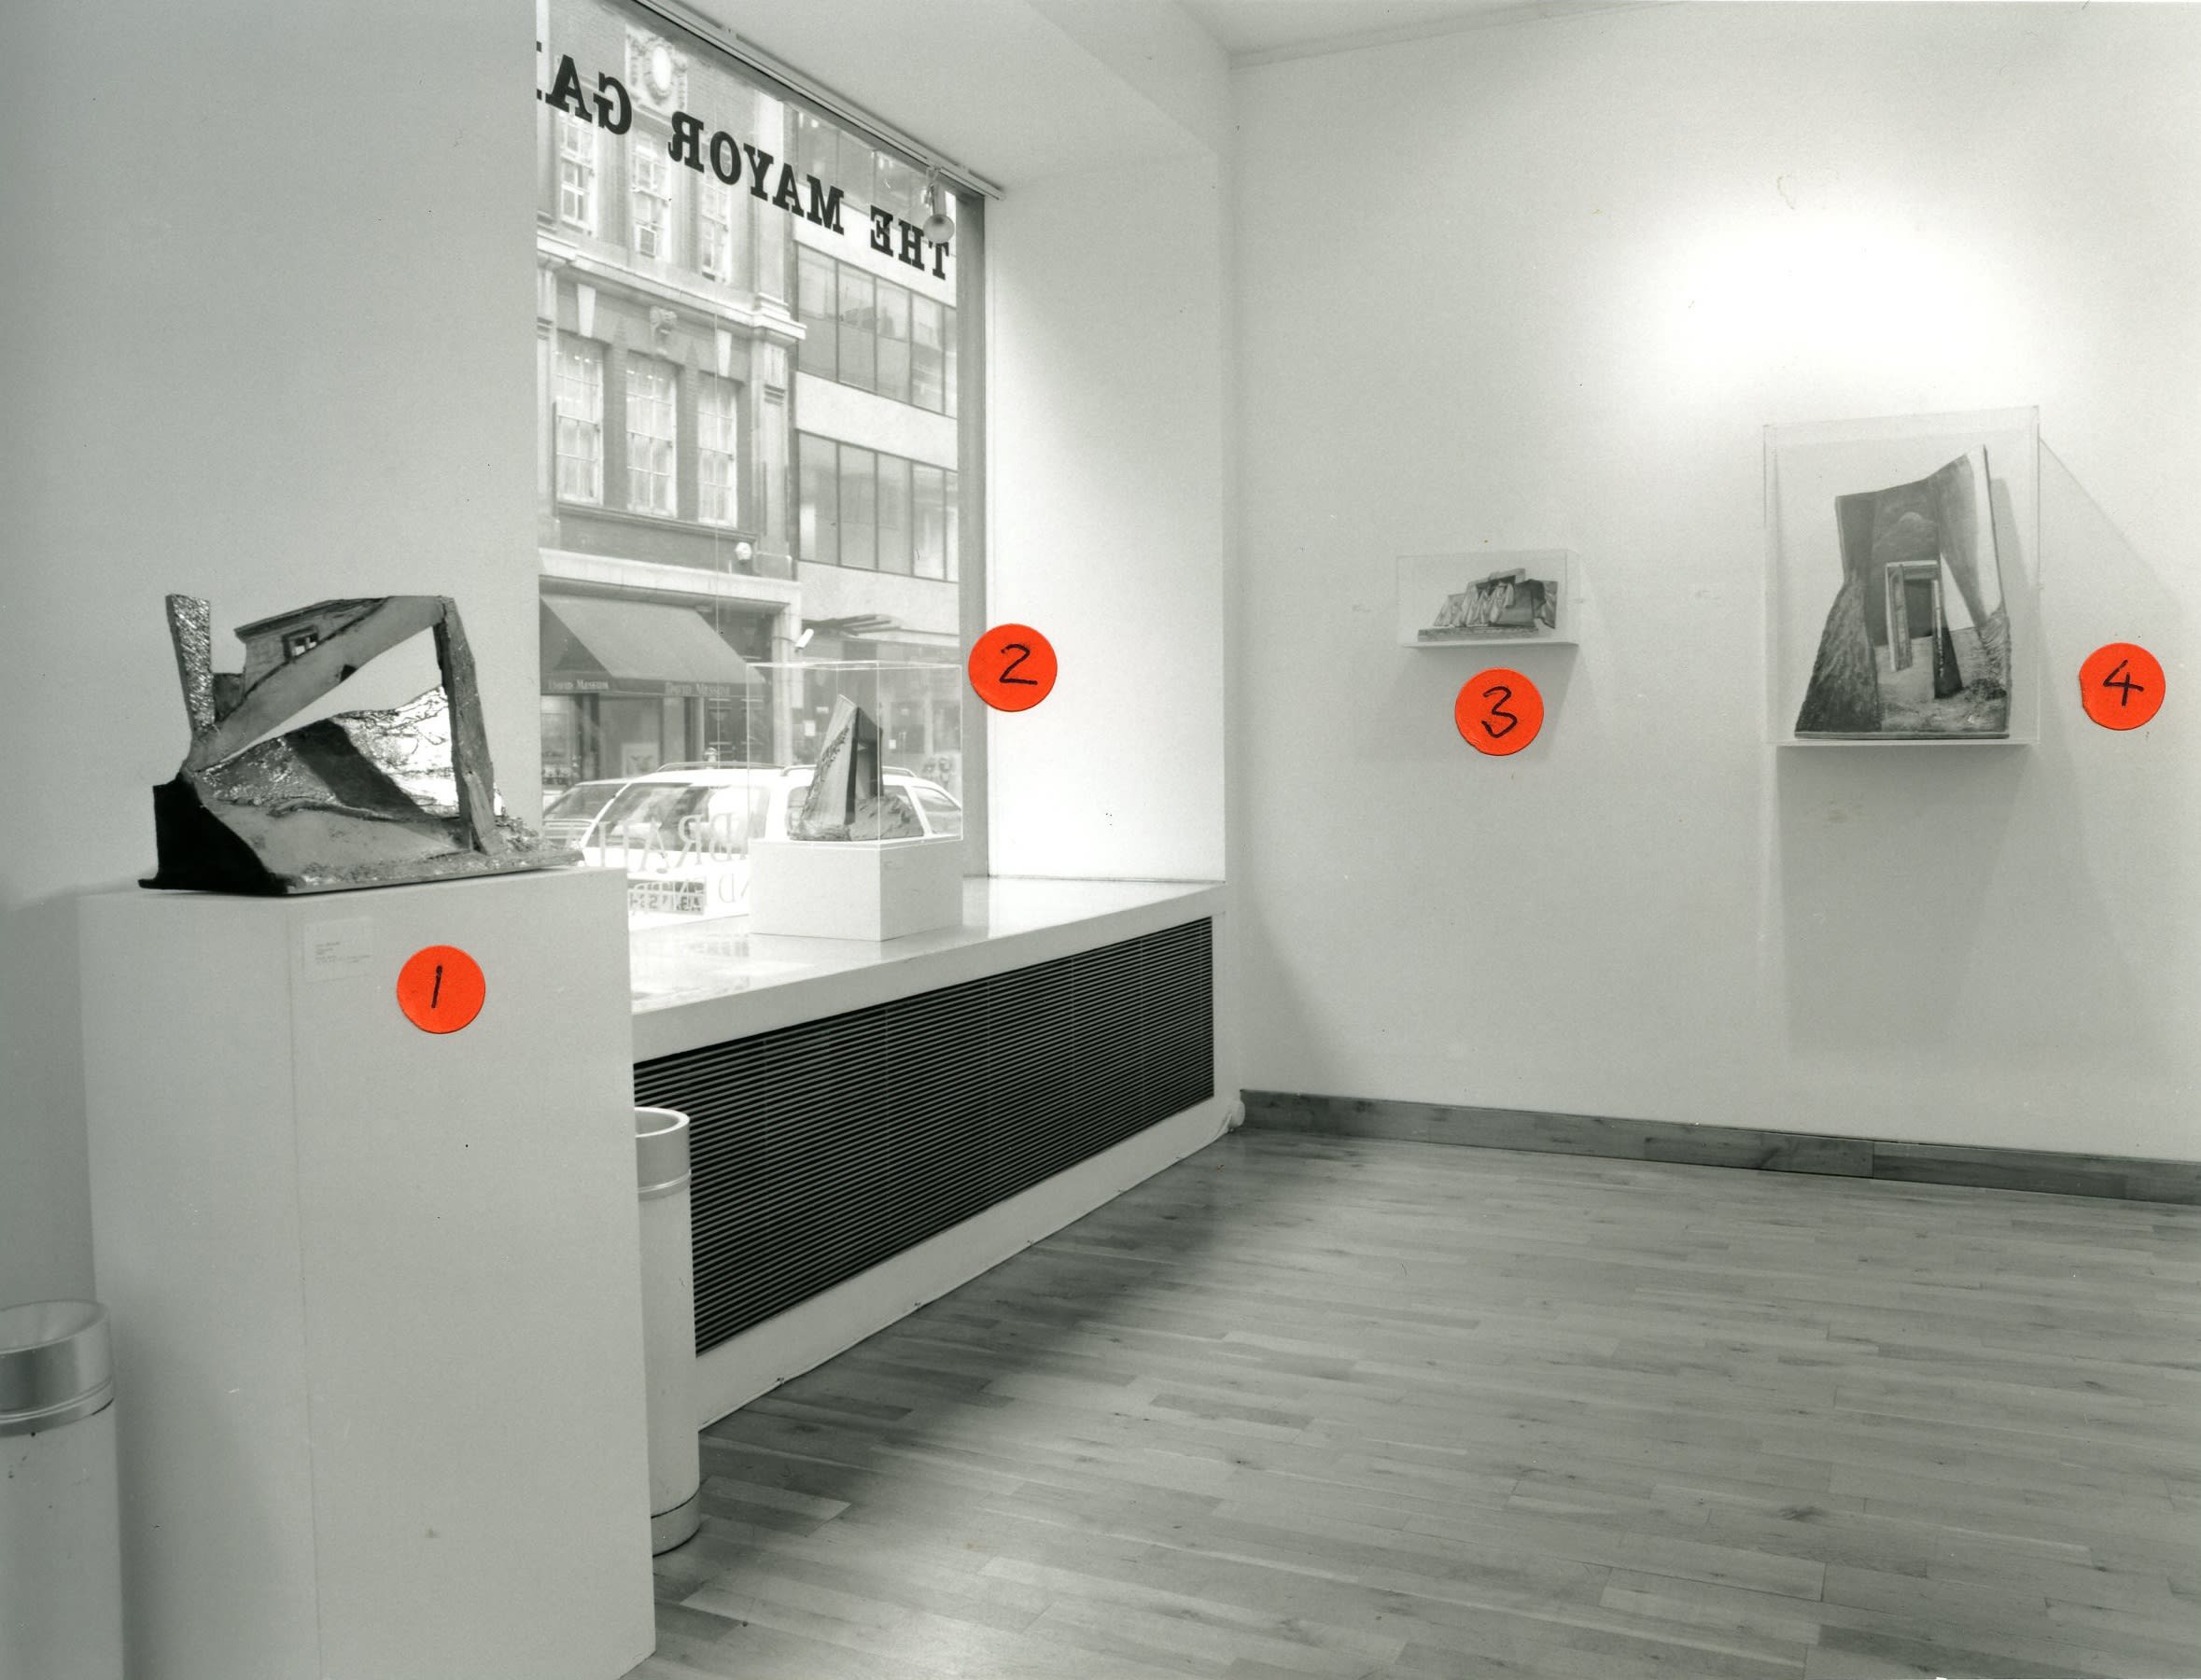 """<span class=""""link fancybox-details-link""""><a href=""""/exhibitions/163/works/image_standalone715/"""">View Detail Page</a></span><p>IVOR ABRAHAMS RA 